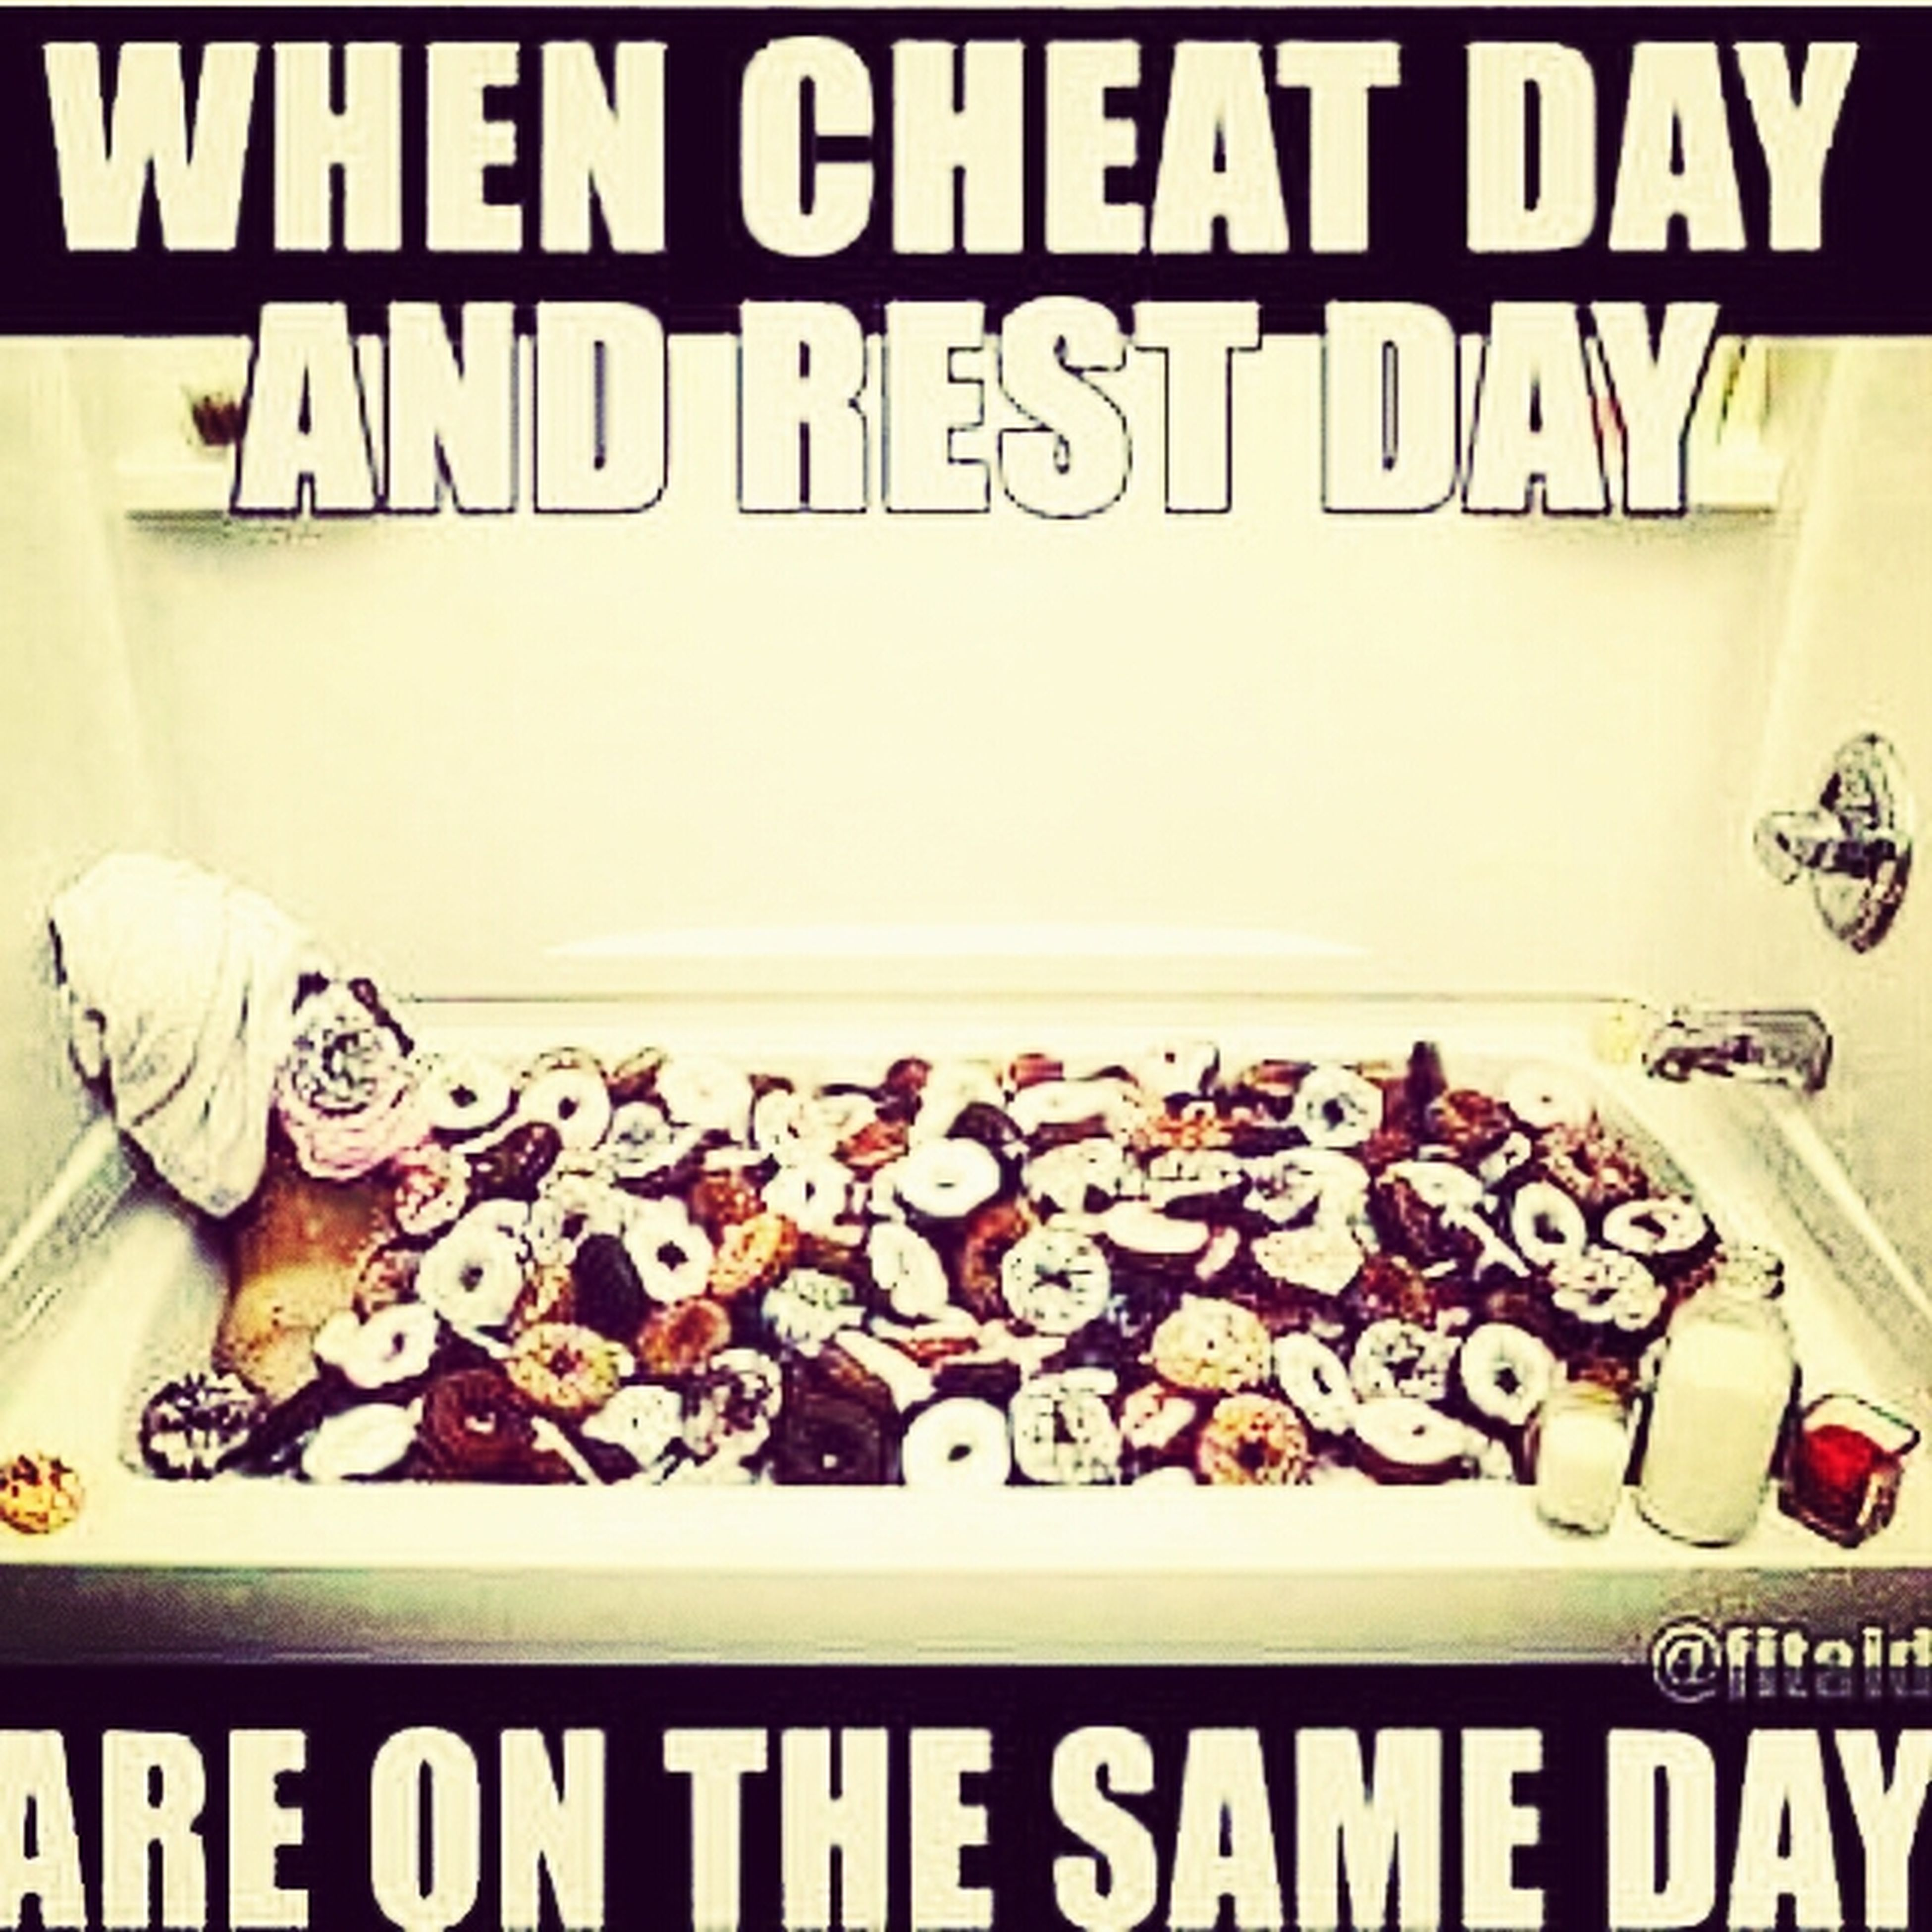 🍨🍧🍦🍹🍩🍩🍰🍪🍫🍬🍭🍔🍟🍕🍝🛀🛀🛀 Cheatday Lovecheatday Fitness Body & Fitness #fitnessmotivation